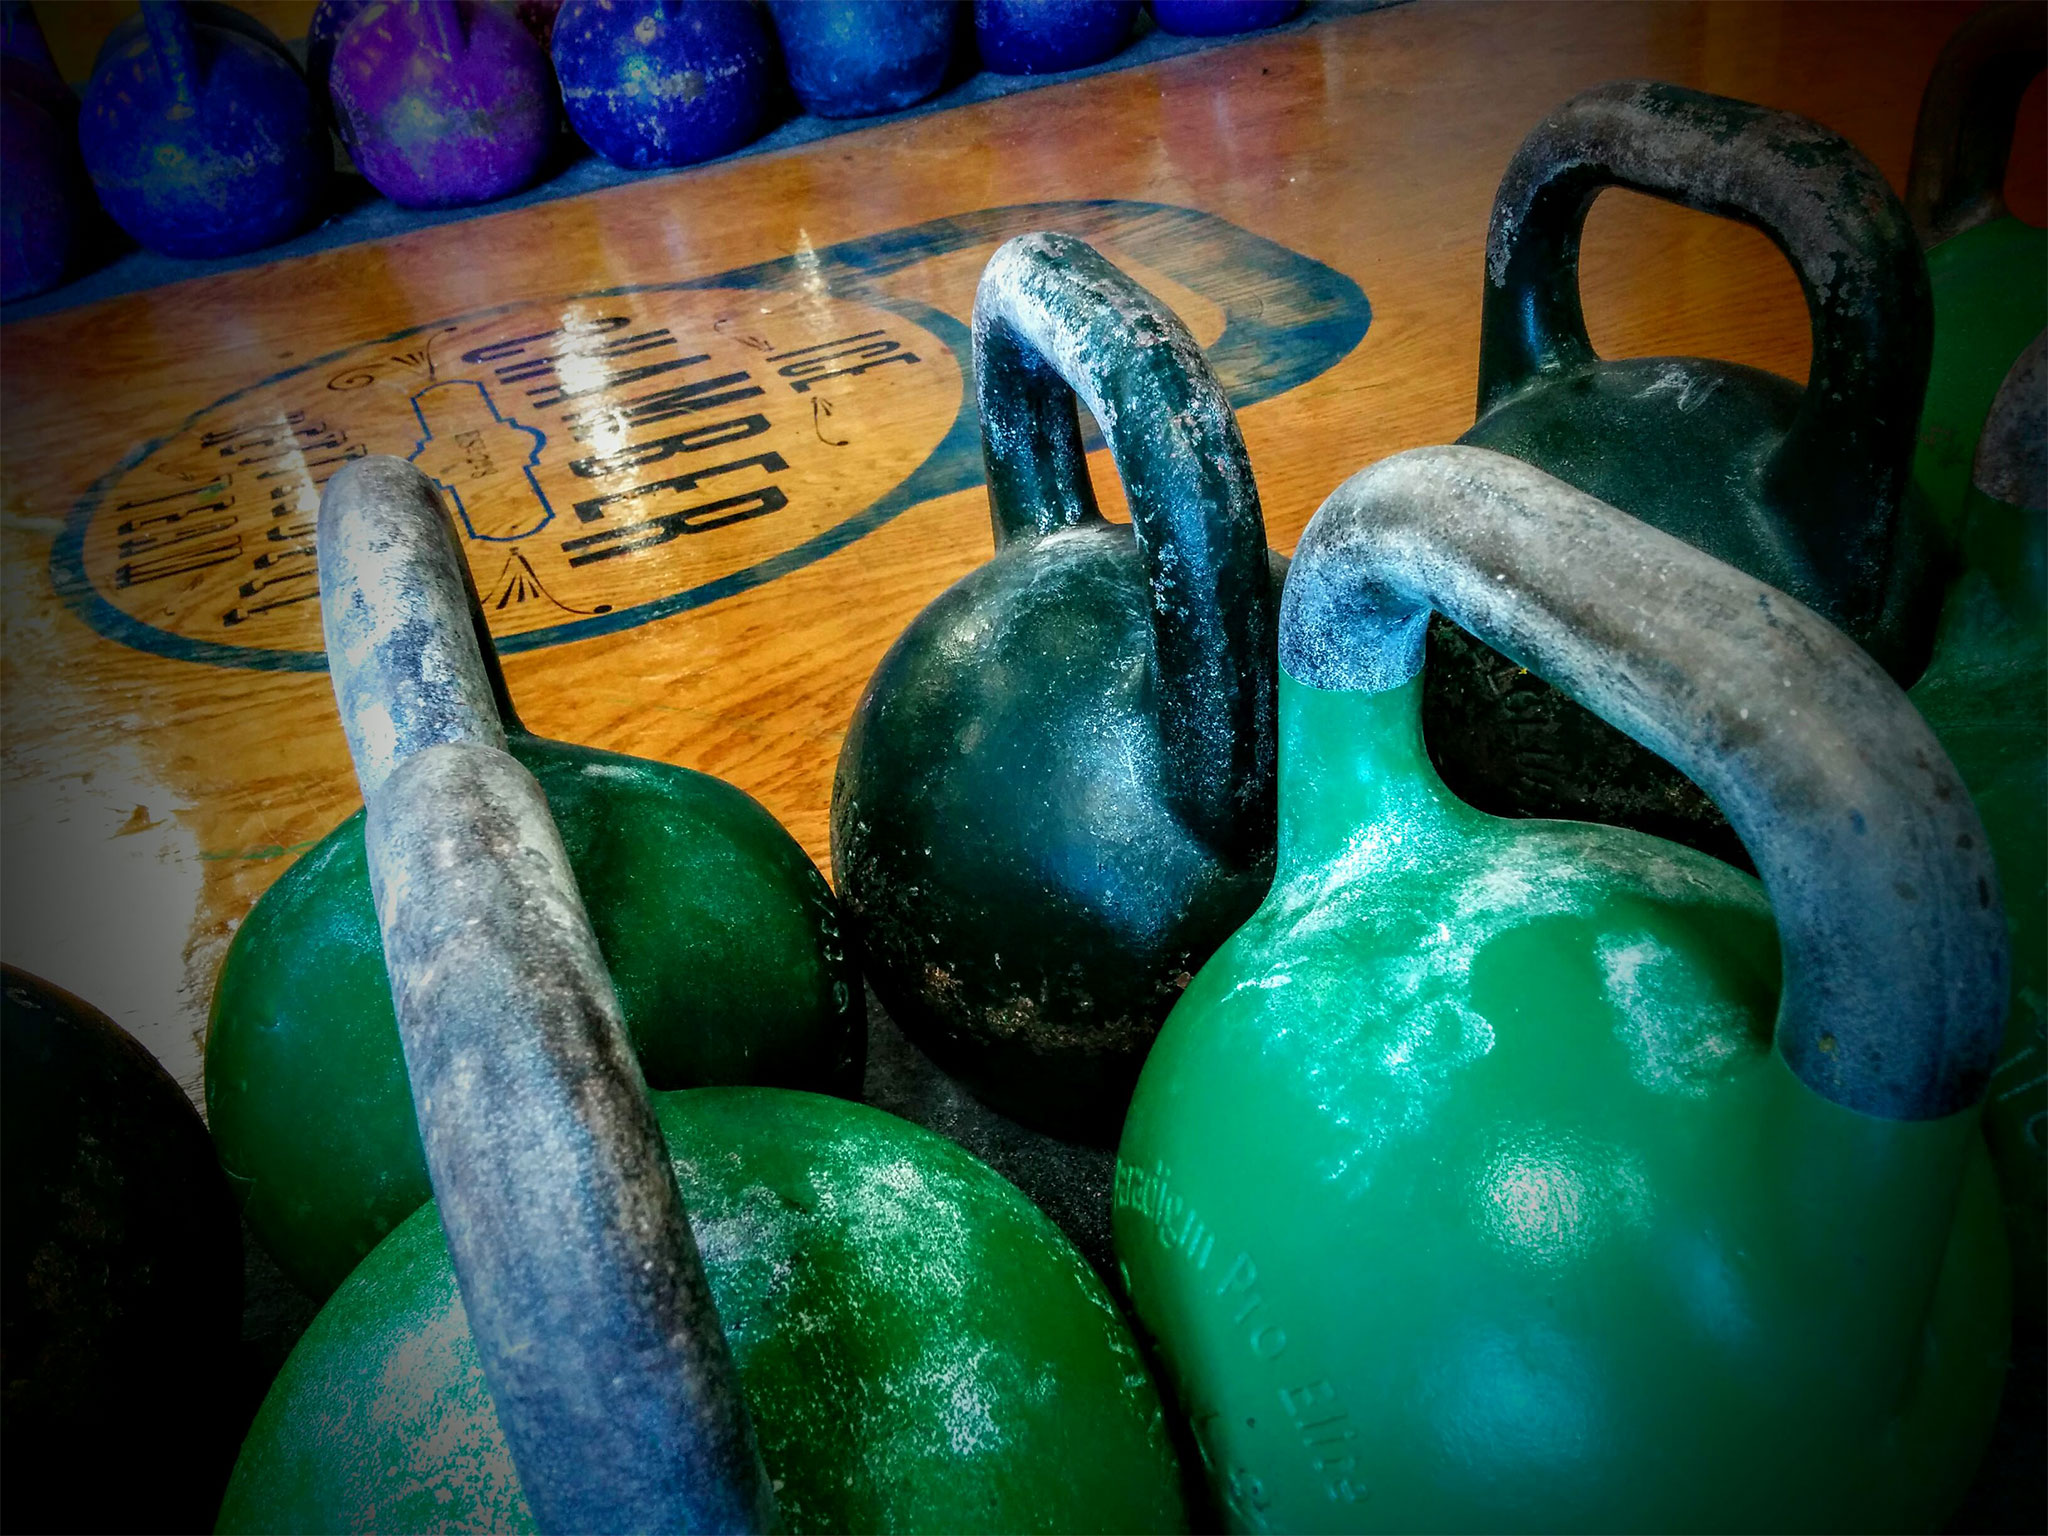 Get fit fast with Kettlebells